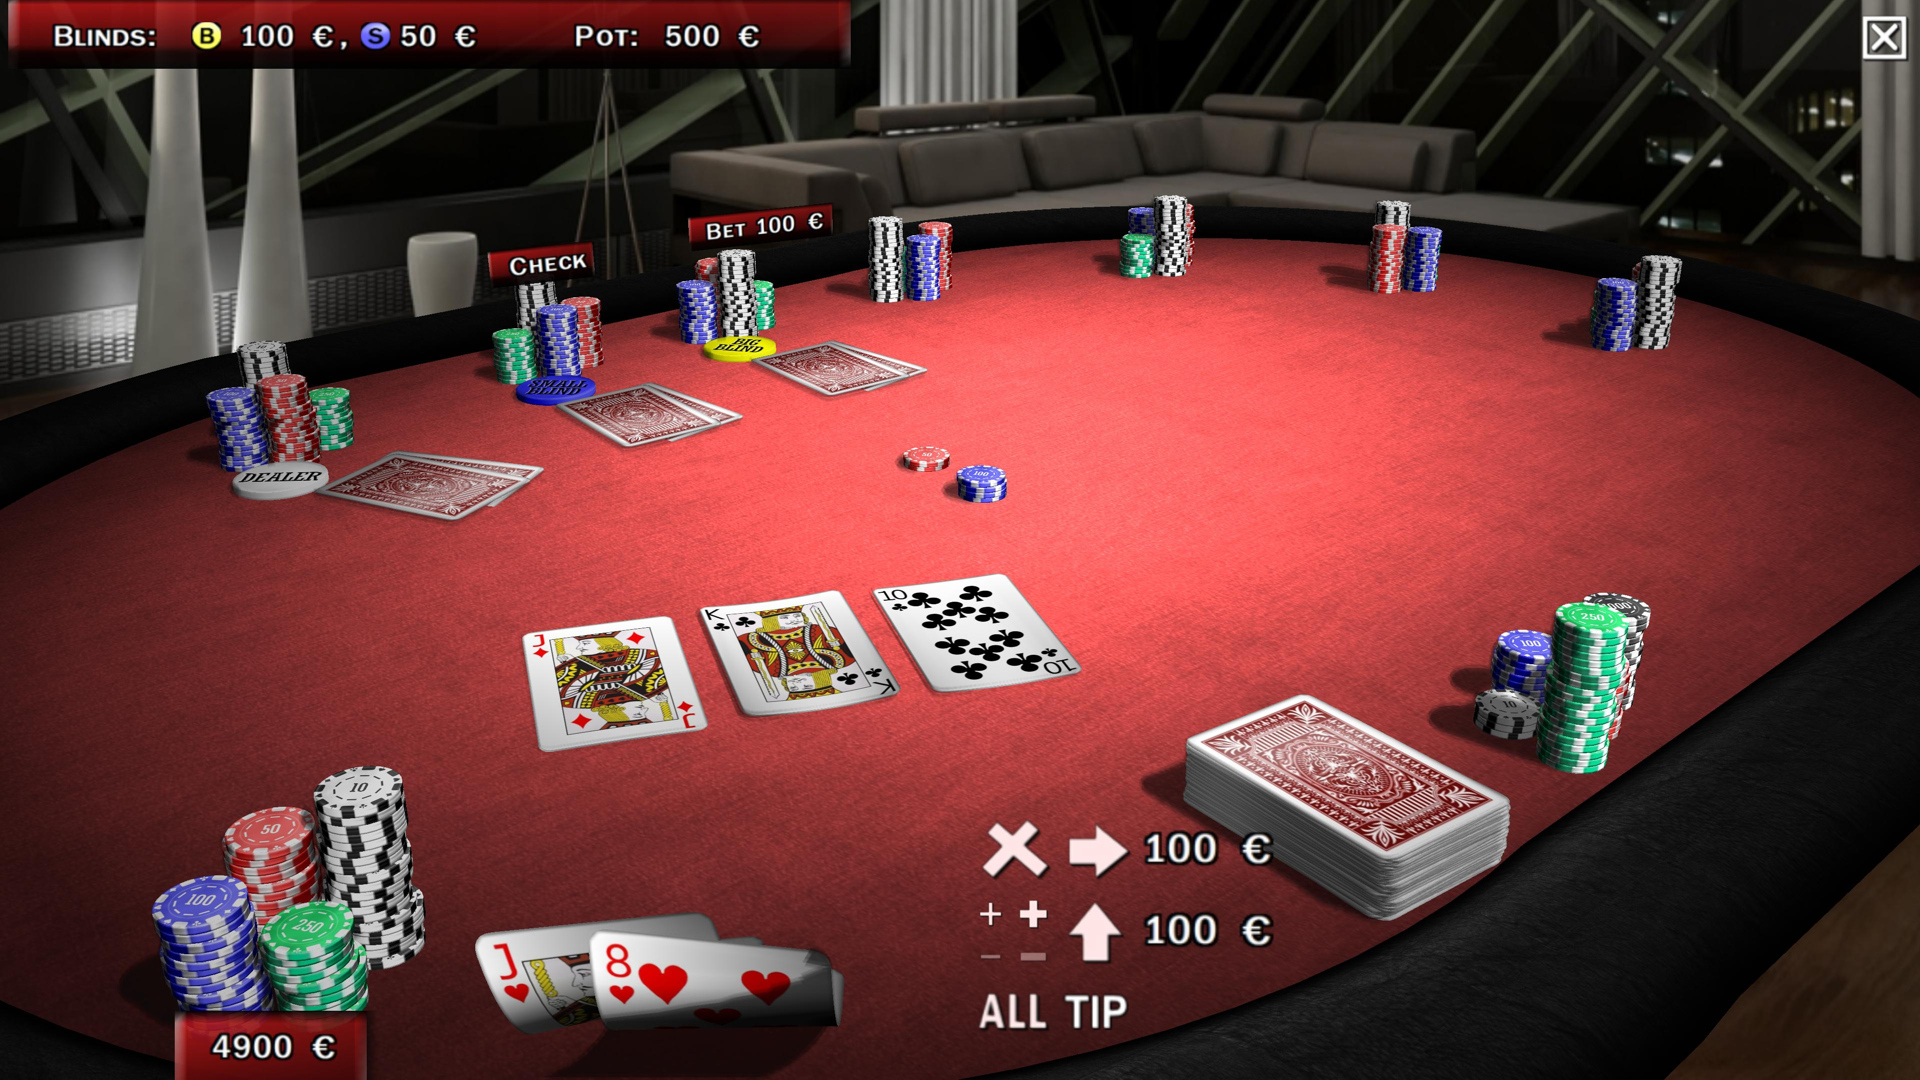 Trendpoker 3d Texas Hold Em Poker System Requirements Can I Run It Pcgamebenchmark